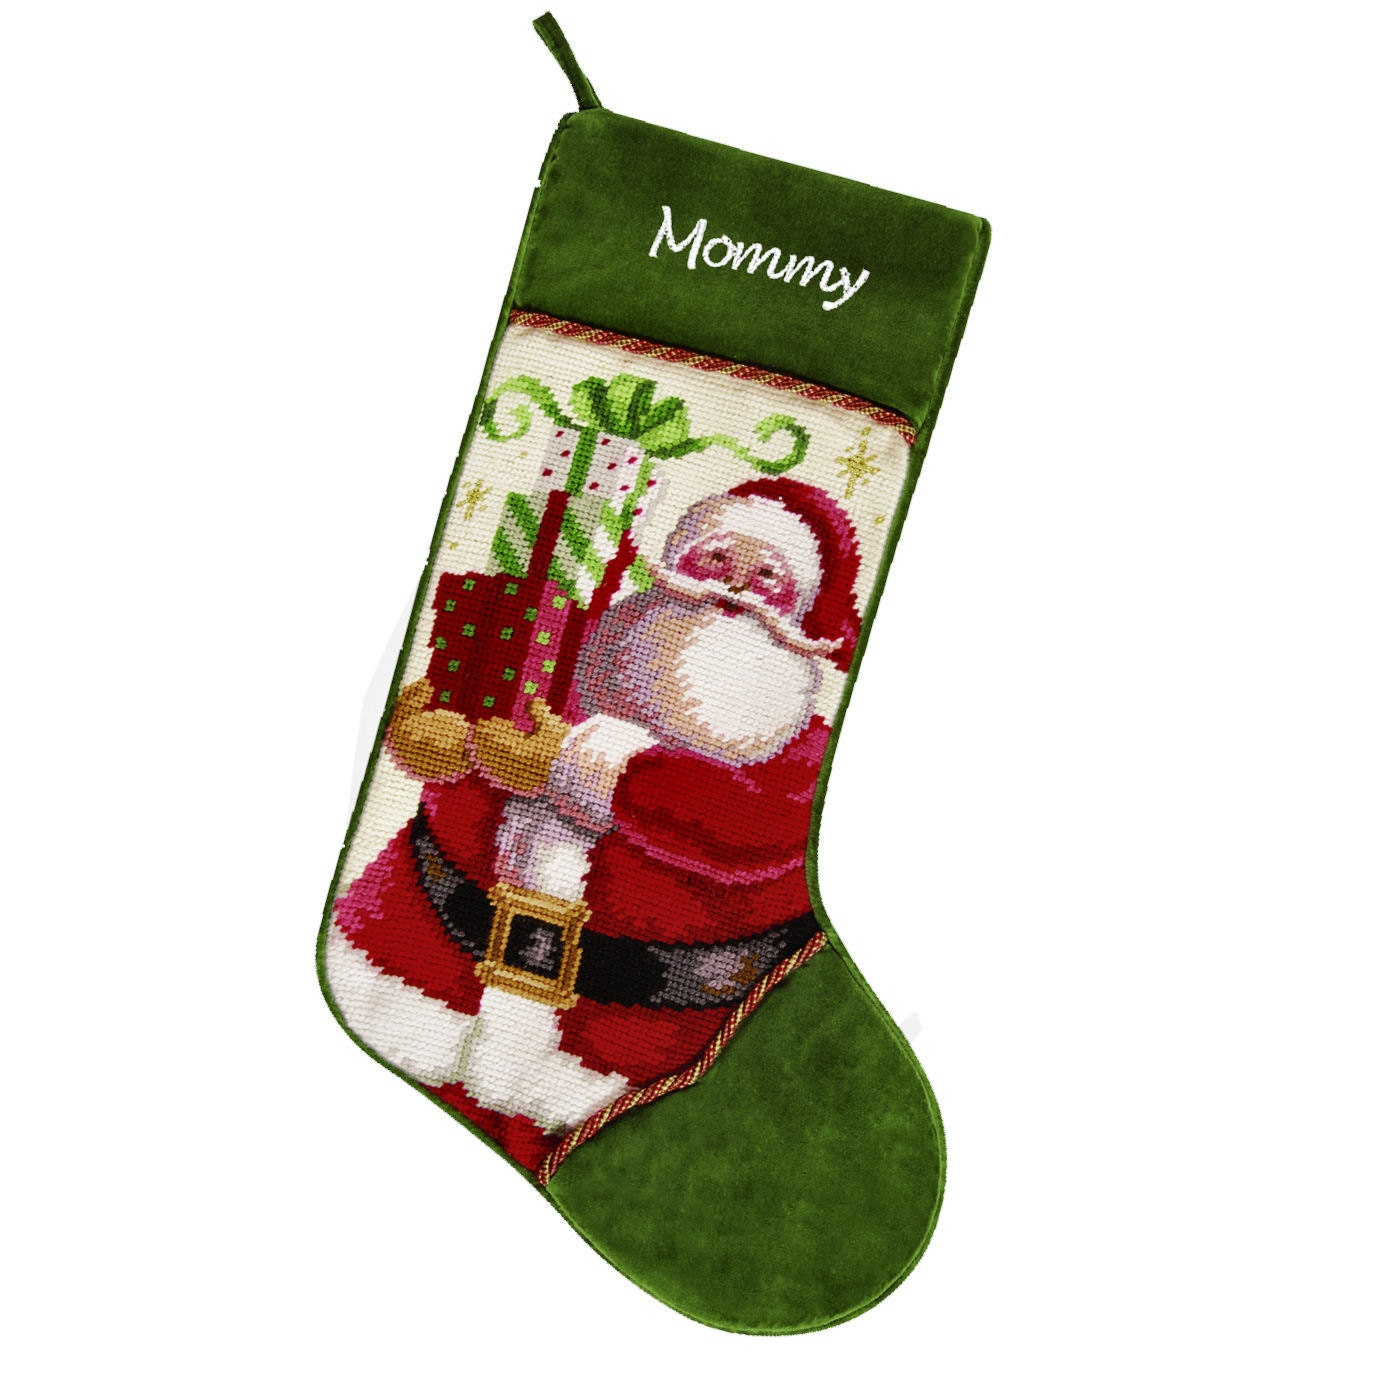 Monogram Christmas Stocking